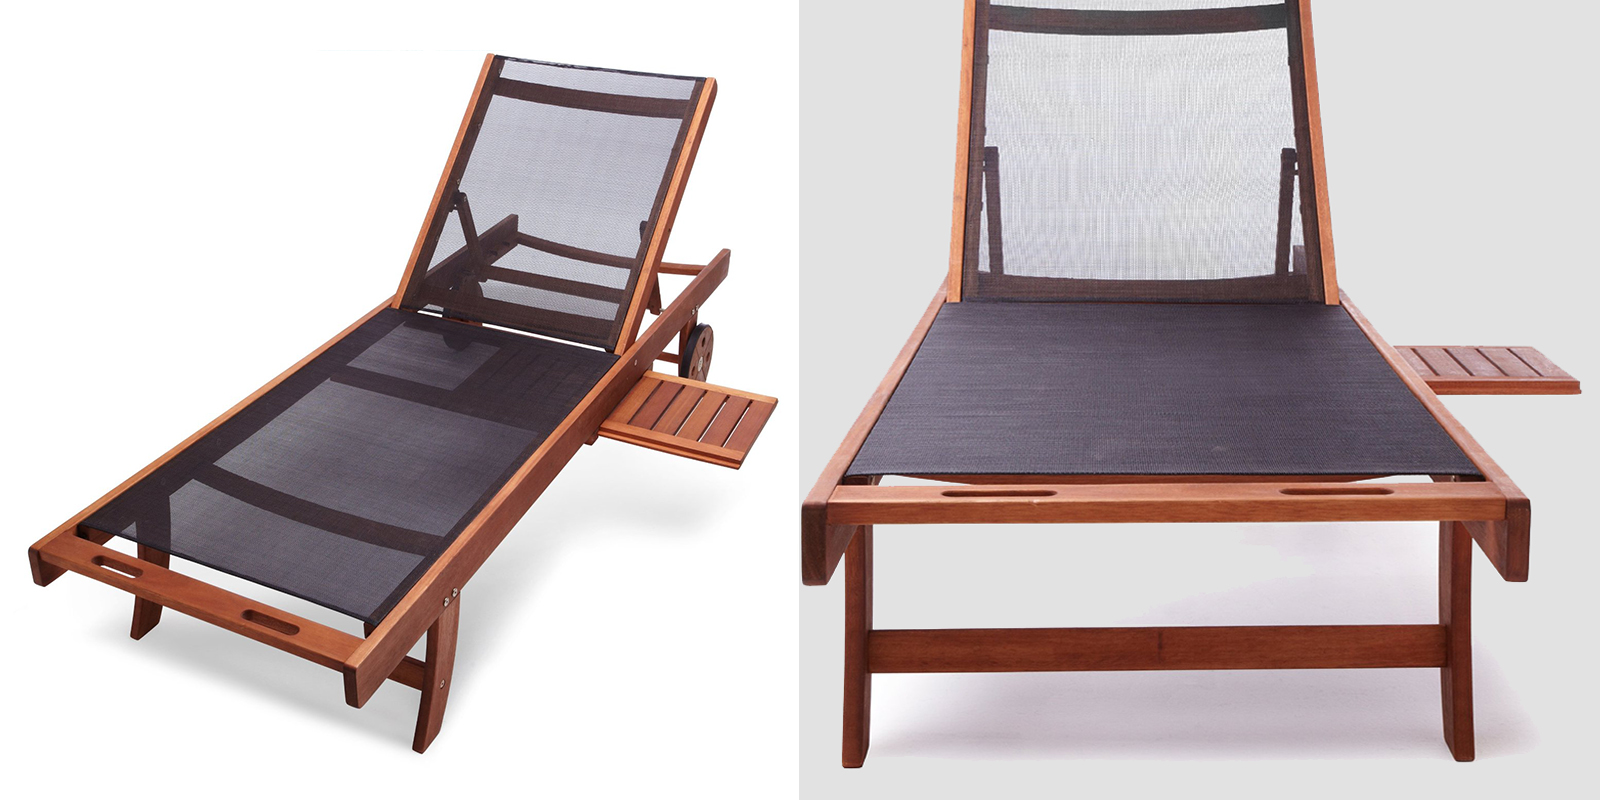 Patio Chair - Chaise Lounge with Fabric